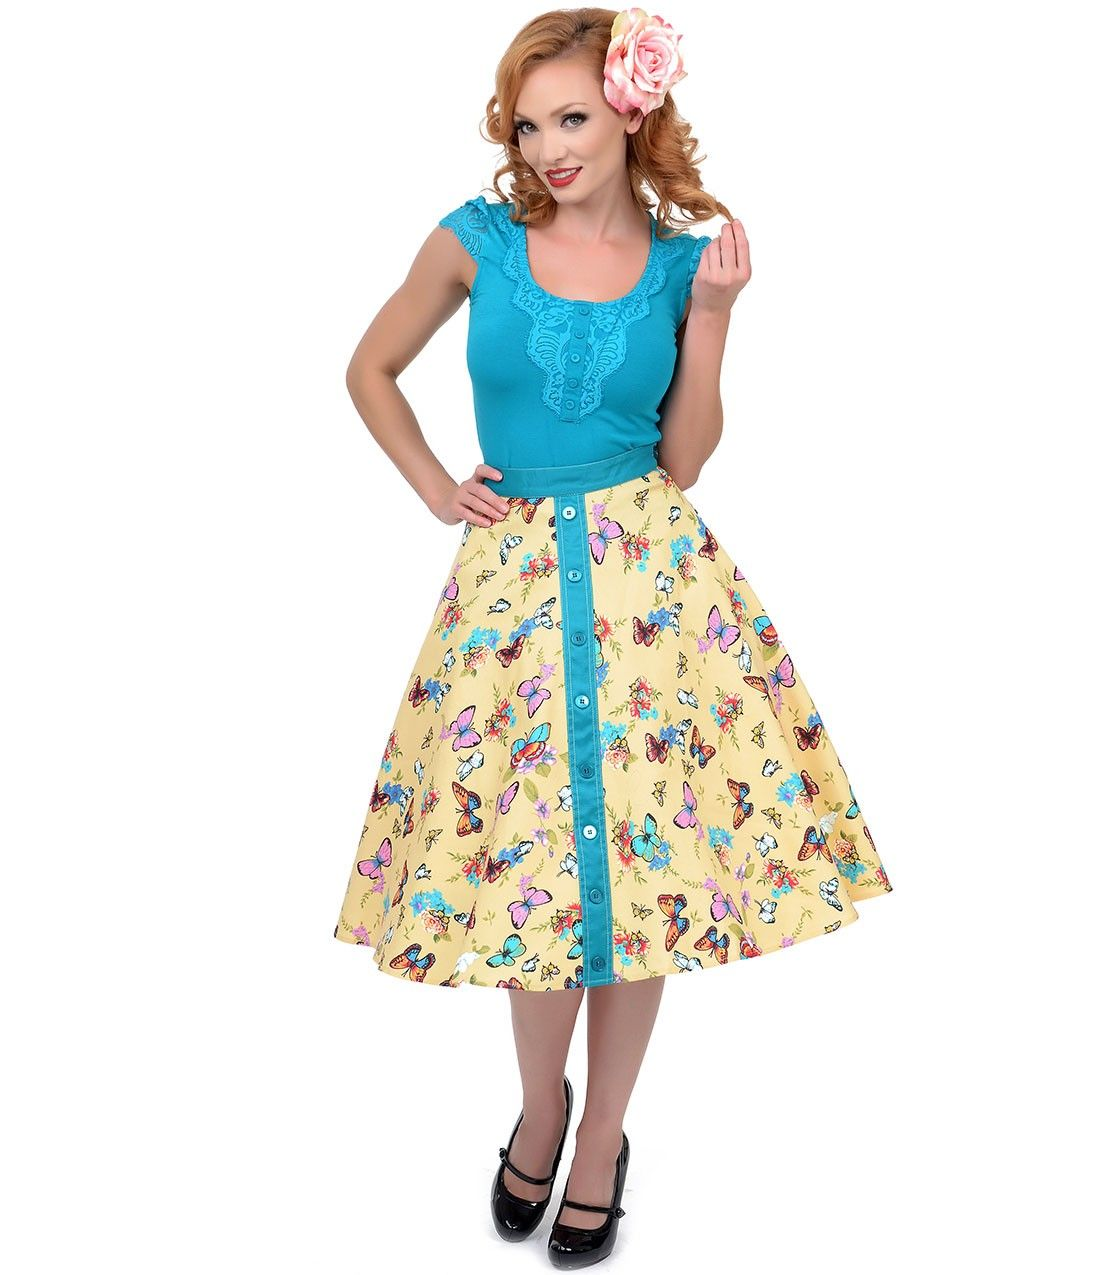 Turquoise & Yellow High Waist Butterfly Swing Skirt